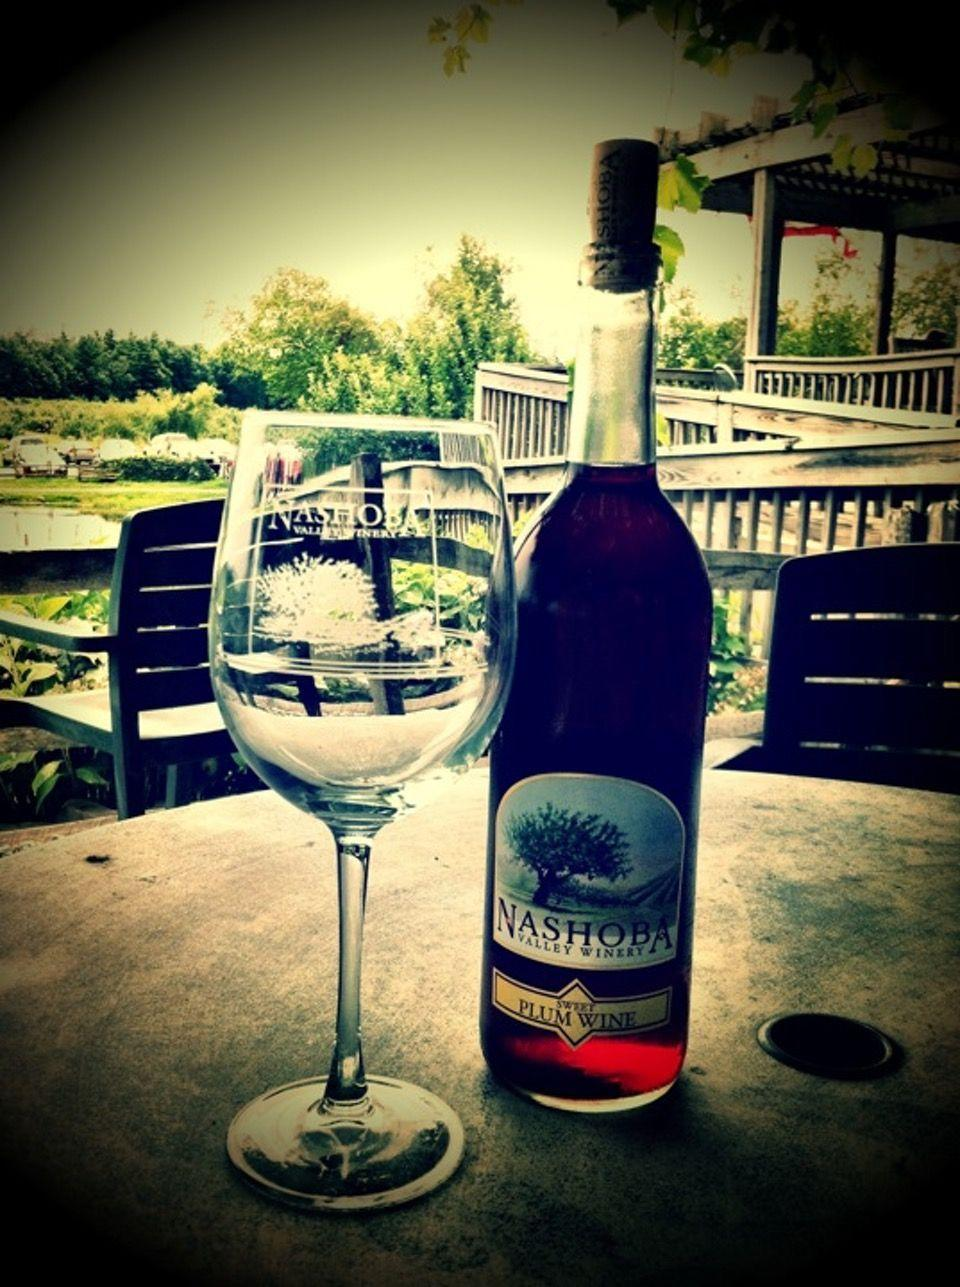 """<p><a href=""""https://foursquare.com/v/nashoba-valley-winery/49d0d1eaf964a520375b1fe3"""" rel=""""nofollow noopener"""" target=""""_blank"""" data-ylk=""""slk:Nashoba Valley Winery"""" class=""""link rapid-noclick-resp"""">Nashoba Valley Winery</a> in Bolton</p><p>""""Bring a <span class=""""entity tip_taste_match"""">picnic</span> <span class=""""entity tip_taste_match"""">lunch</span> and enjoy the <span class=""""entity tip_taste_match"""">view</span> with some <span class=""""entity tip_taste_match"""">local wine</span> and <span class=""""entity tip_taste_match"""">beers</span>.<span class=""""redactor-invisible-space"""">"""" - Foursquare user <a href=""""https://foursquare.com/davesavaria"""" rel=""""nofollow noopener"""" target=""""_blank"""" data-ylk=""""slk:David Savaria"""" class=""""link rapid-noclick-resp"""">David Savaria</a></span></p>"""